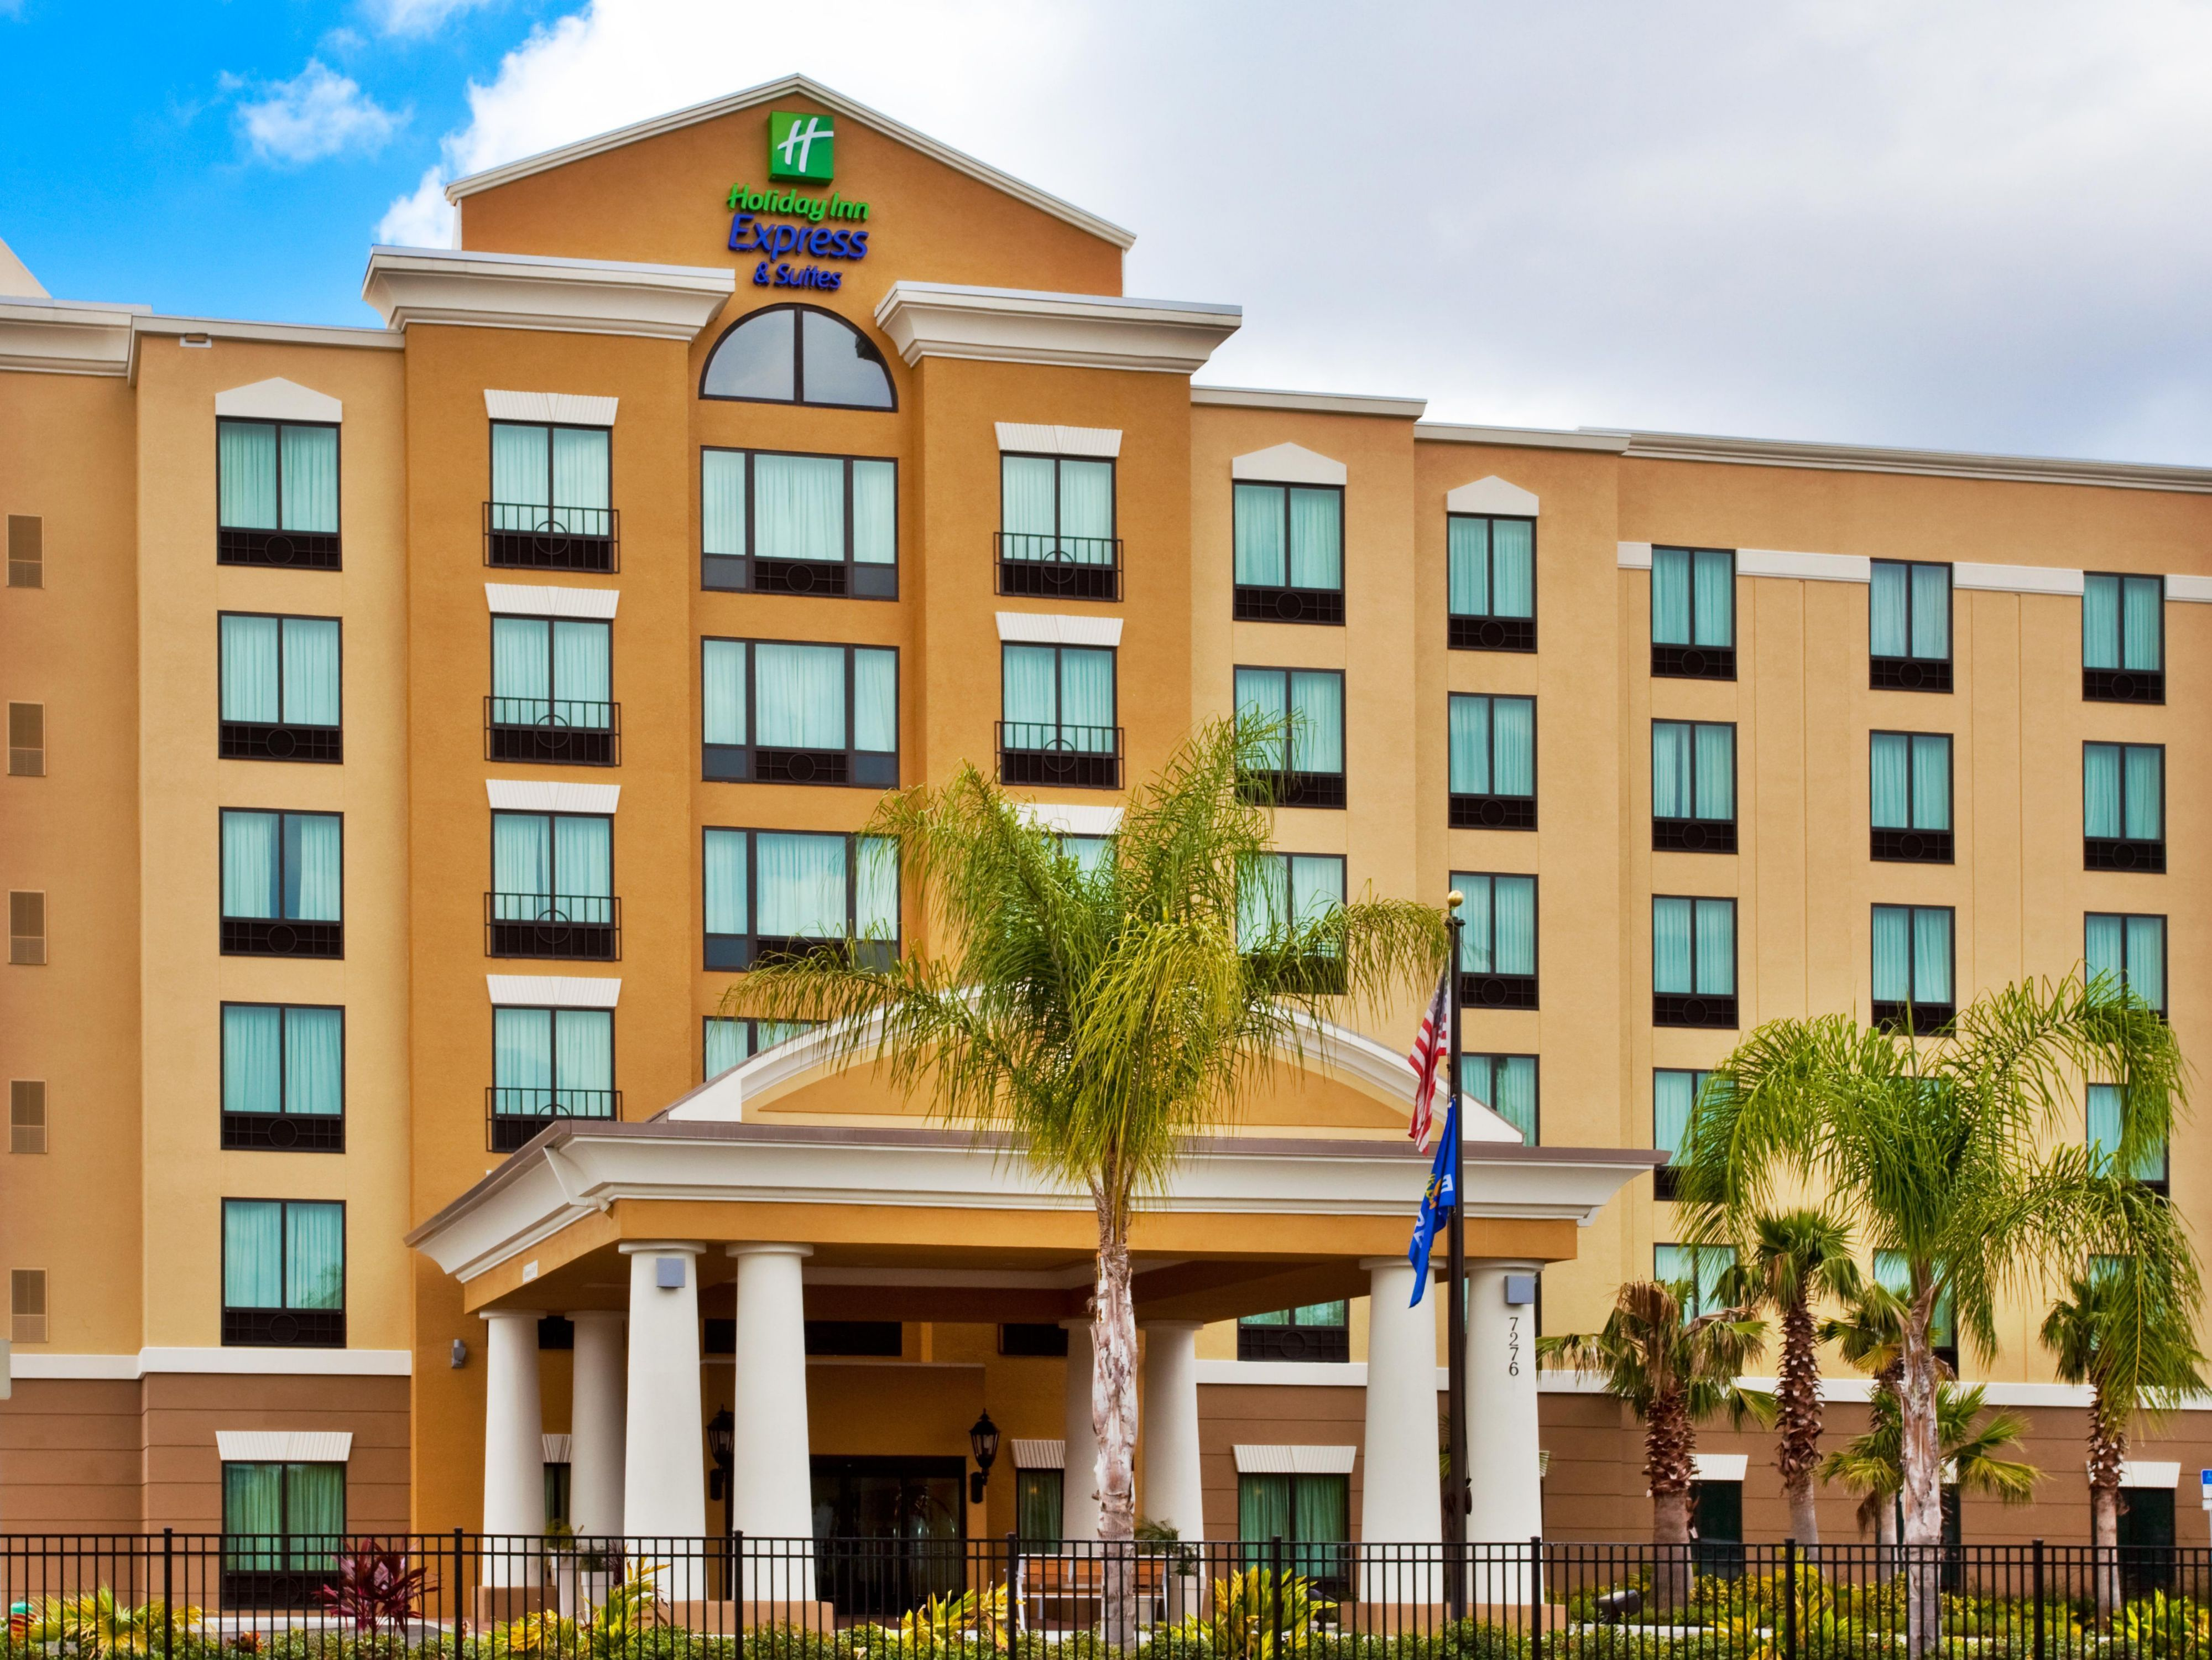 Book And Upgrade Your Hotel Experience At The Holiday Inn Express Suites Orlando Internationa Orlando Hotel International Drive Orlando International Drive